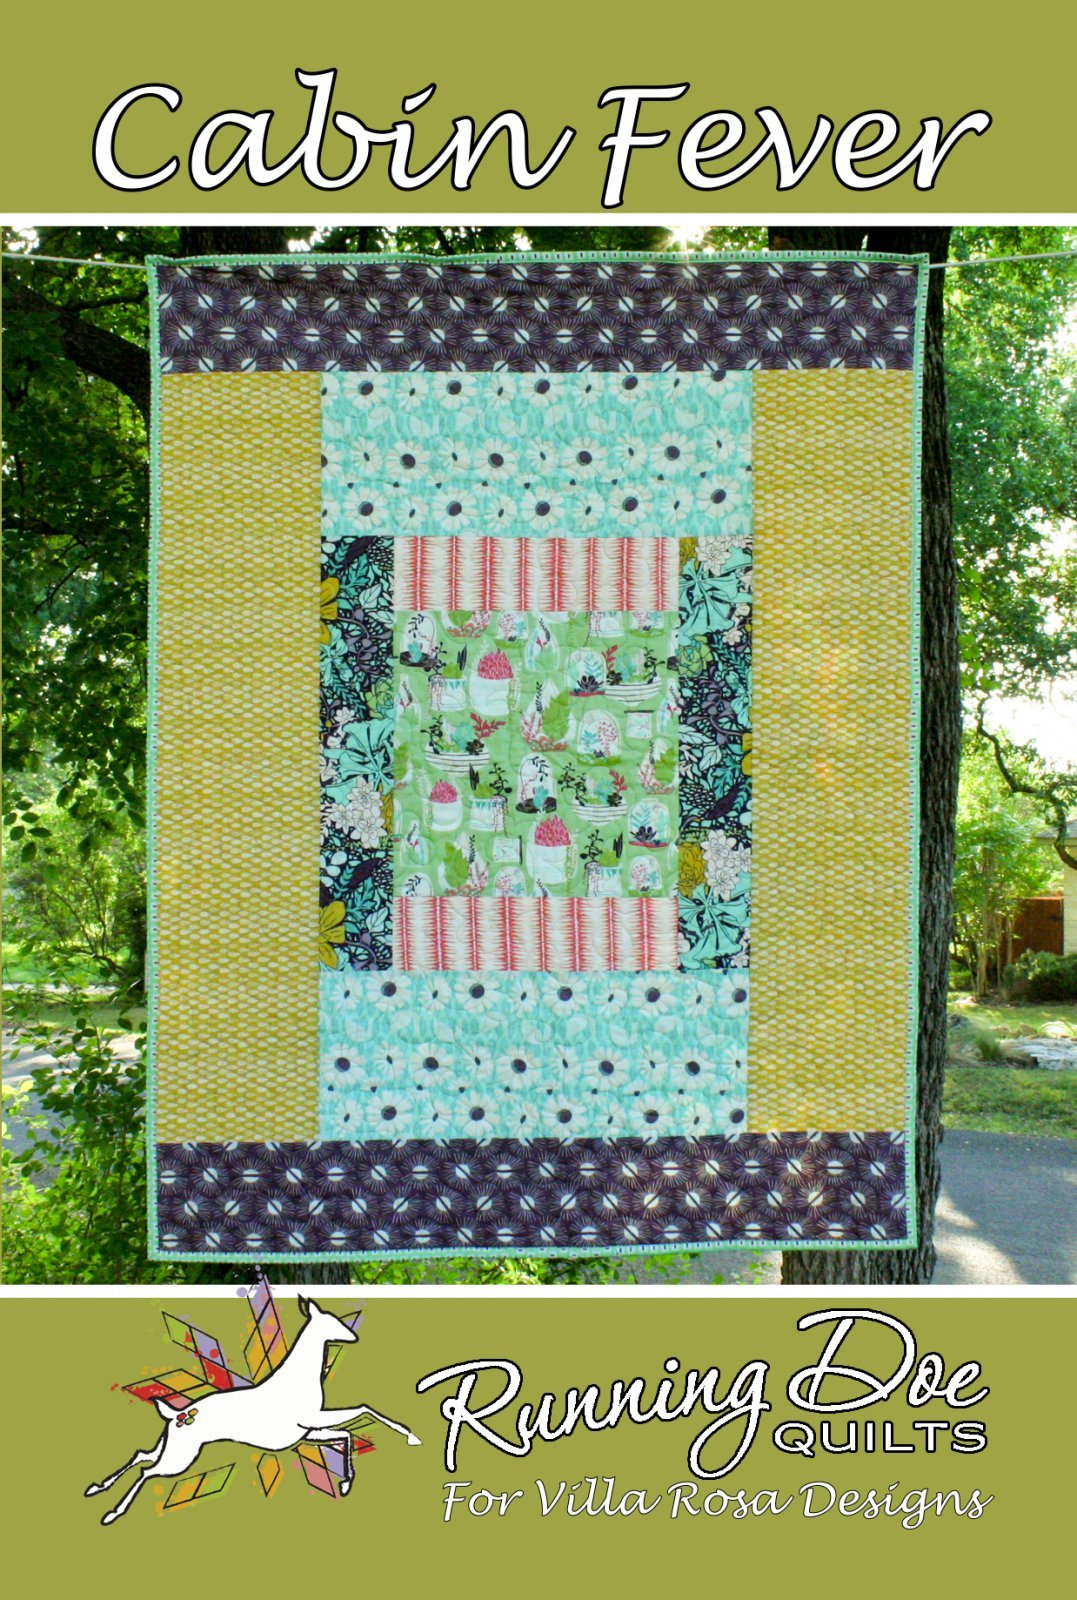 Cabin Fever Card Quilt Pattern by Running Doe Quilts for Villa Rosa Designs